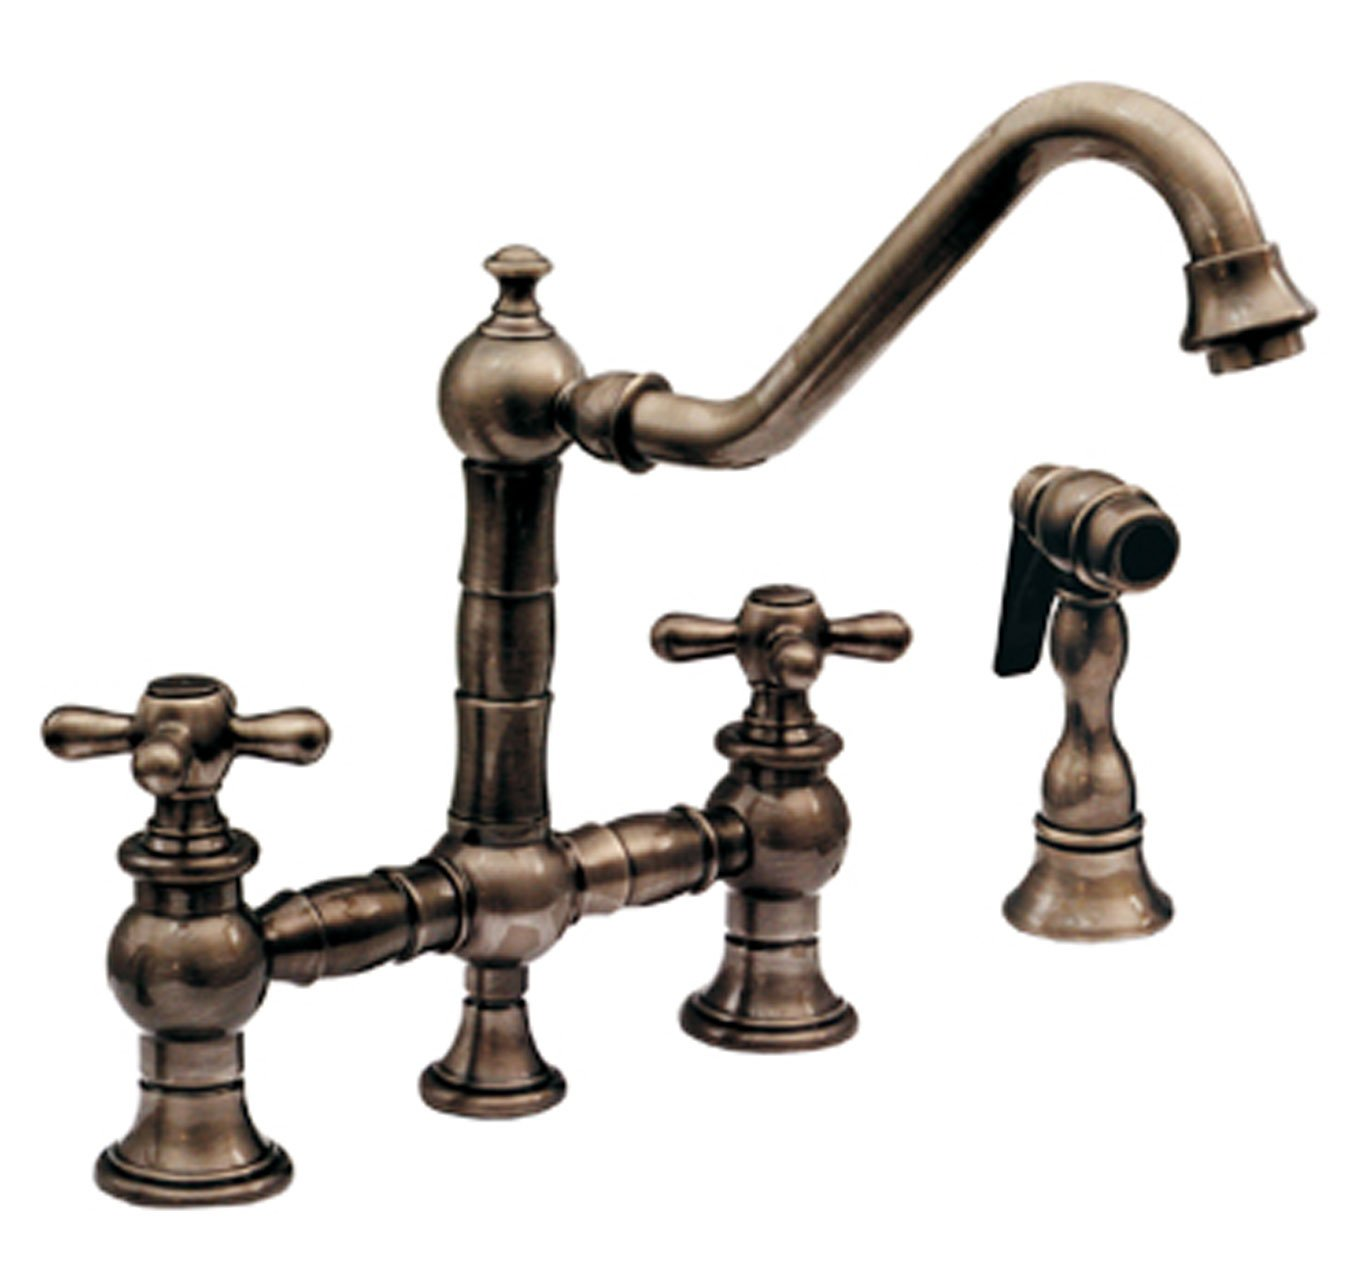 Delicieux Whitehaus WHKBTCR3 9201 AB Vintage III Kitchen Bridge Faucet With Long  Traditional Swivel Spout, Cross Handles, And Matching Side Spray   Touch On  Kitchen ...